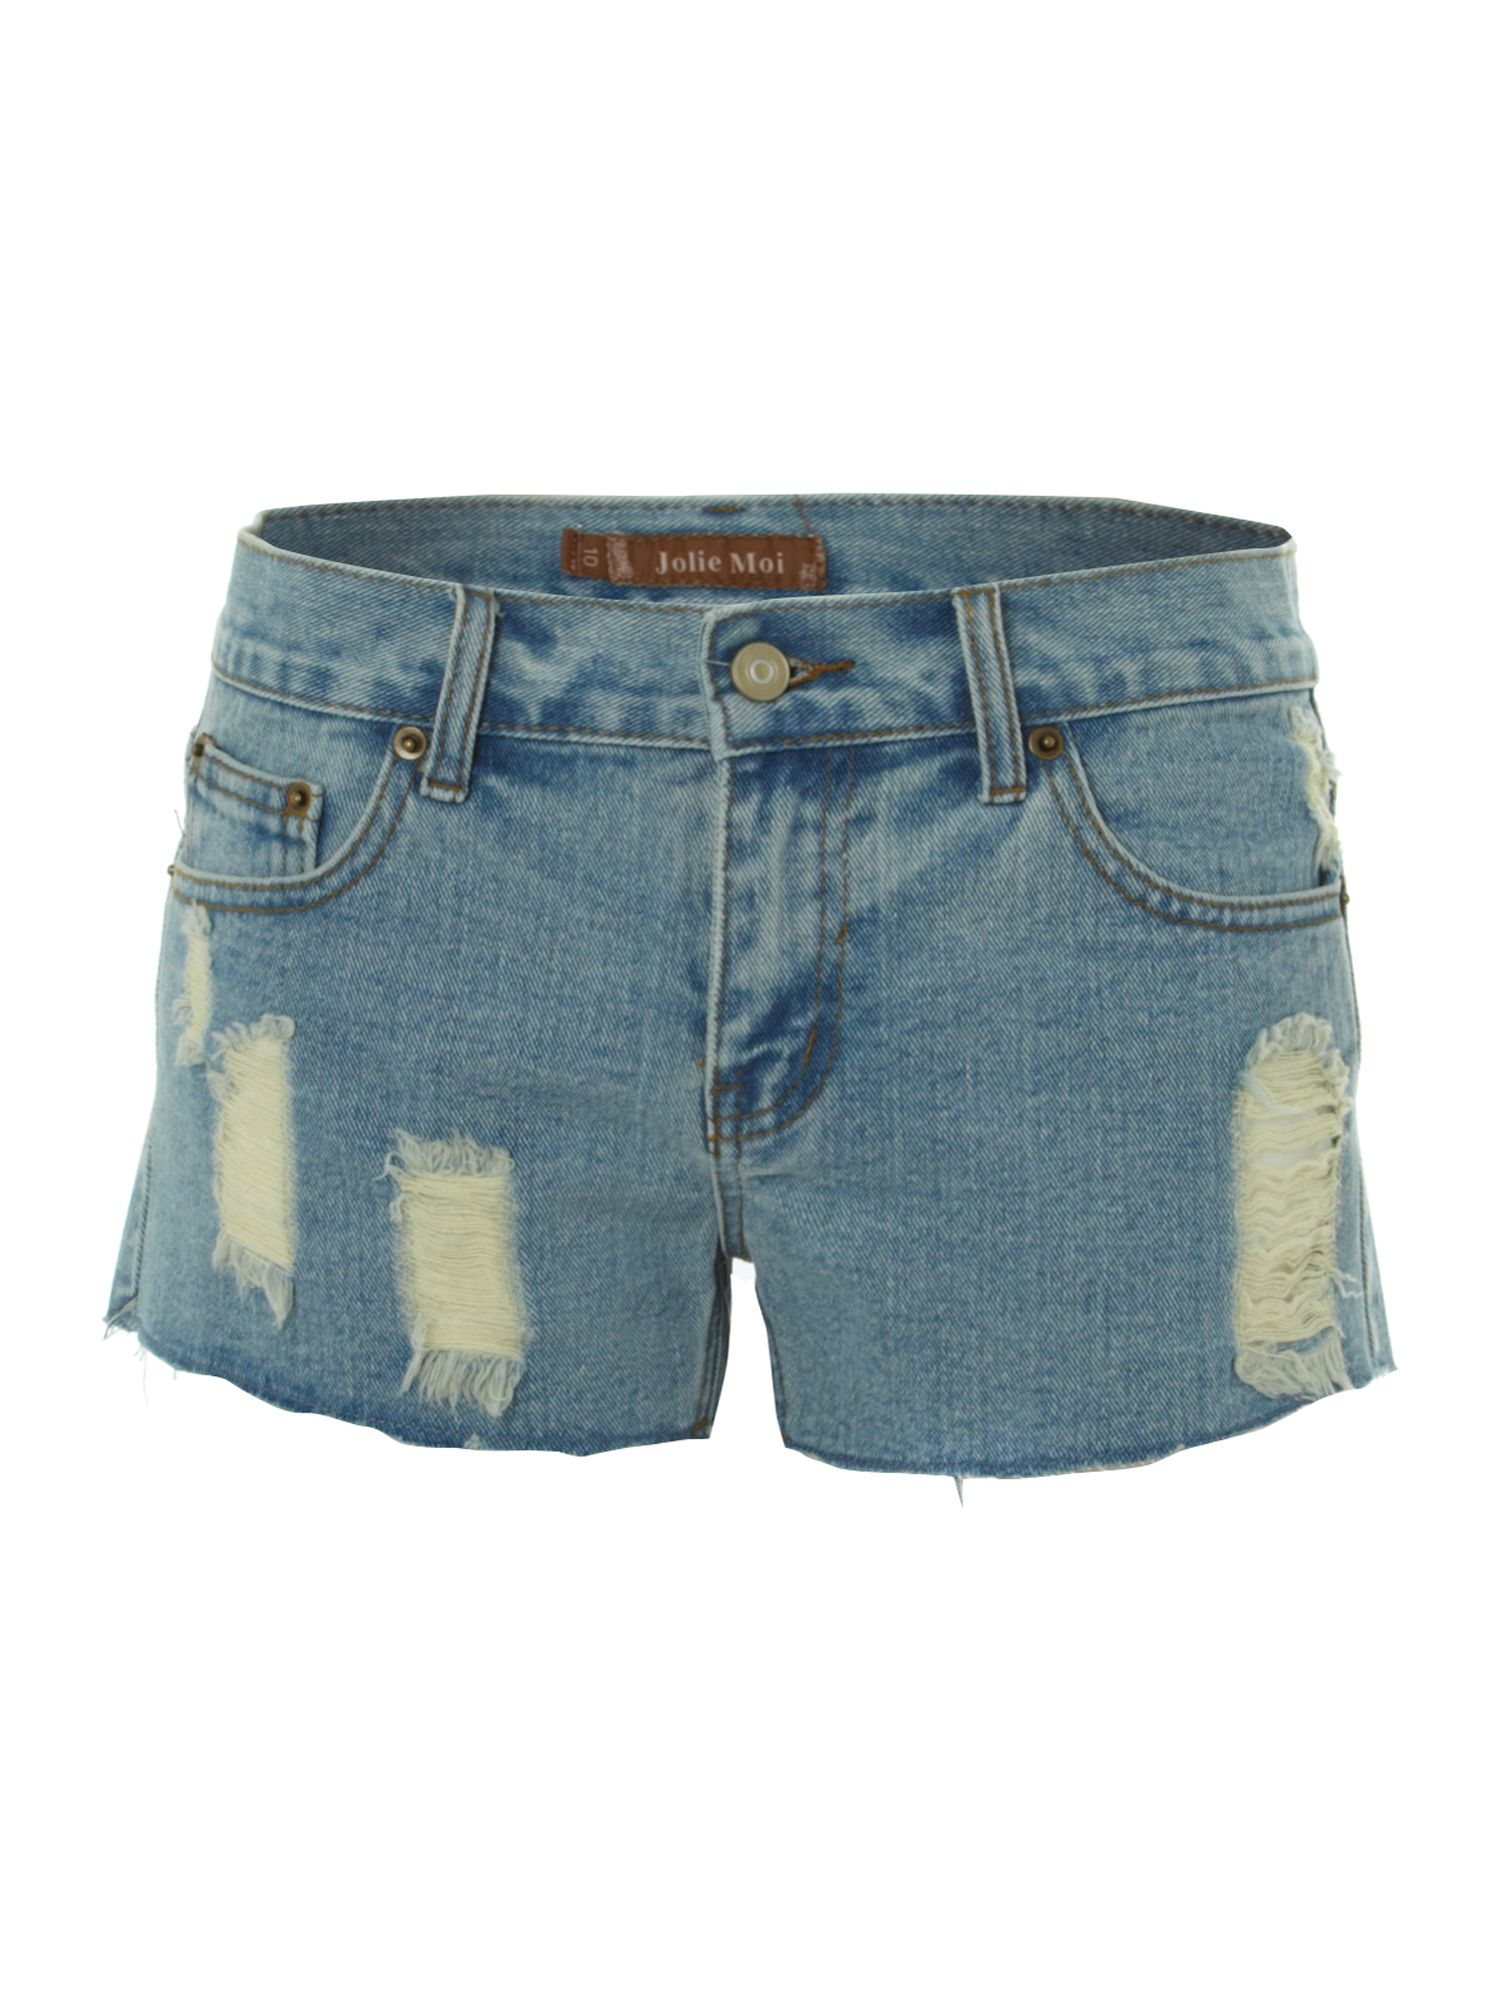 Distressed look denim shorts